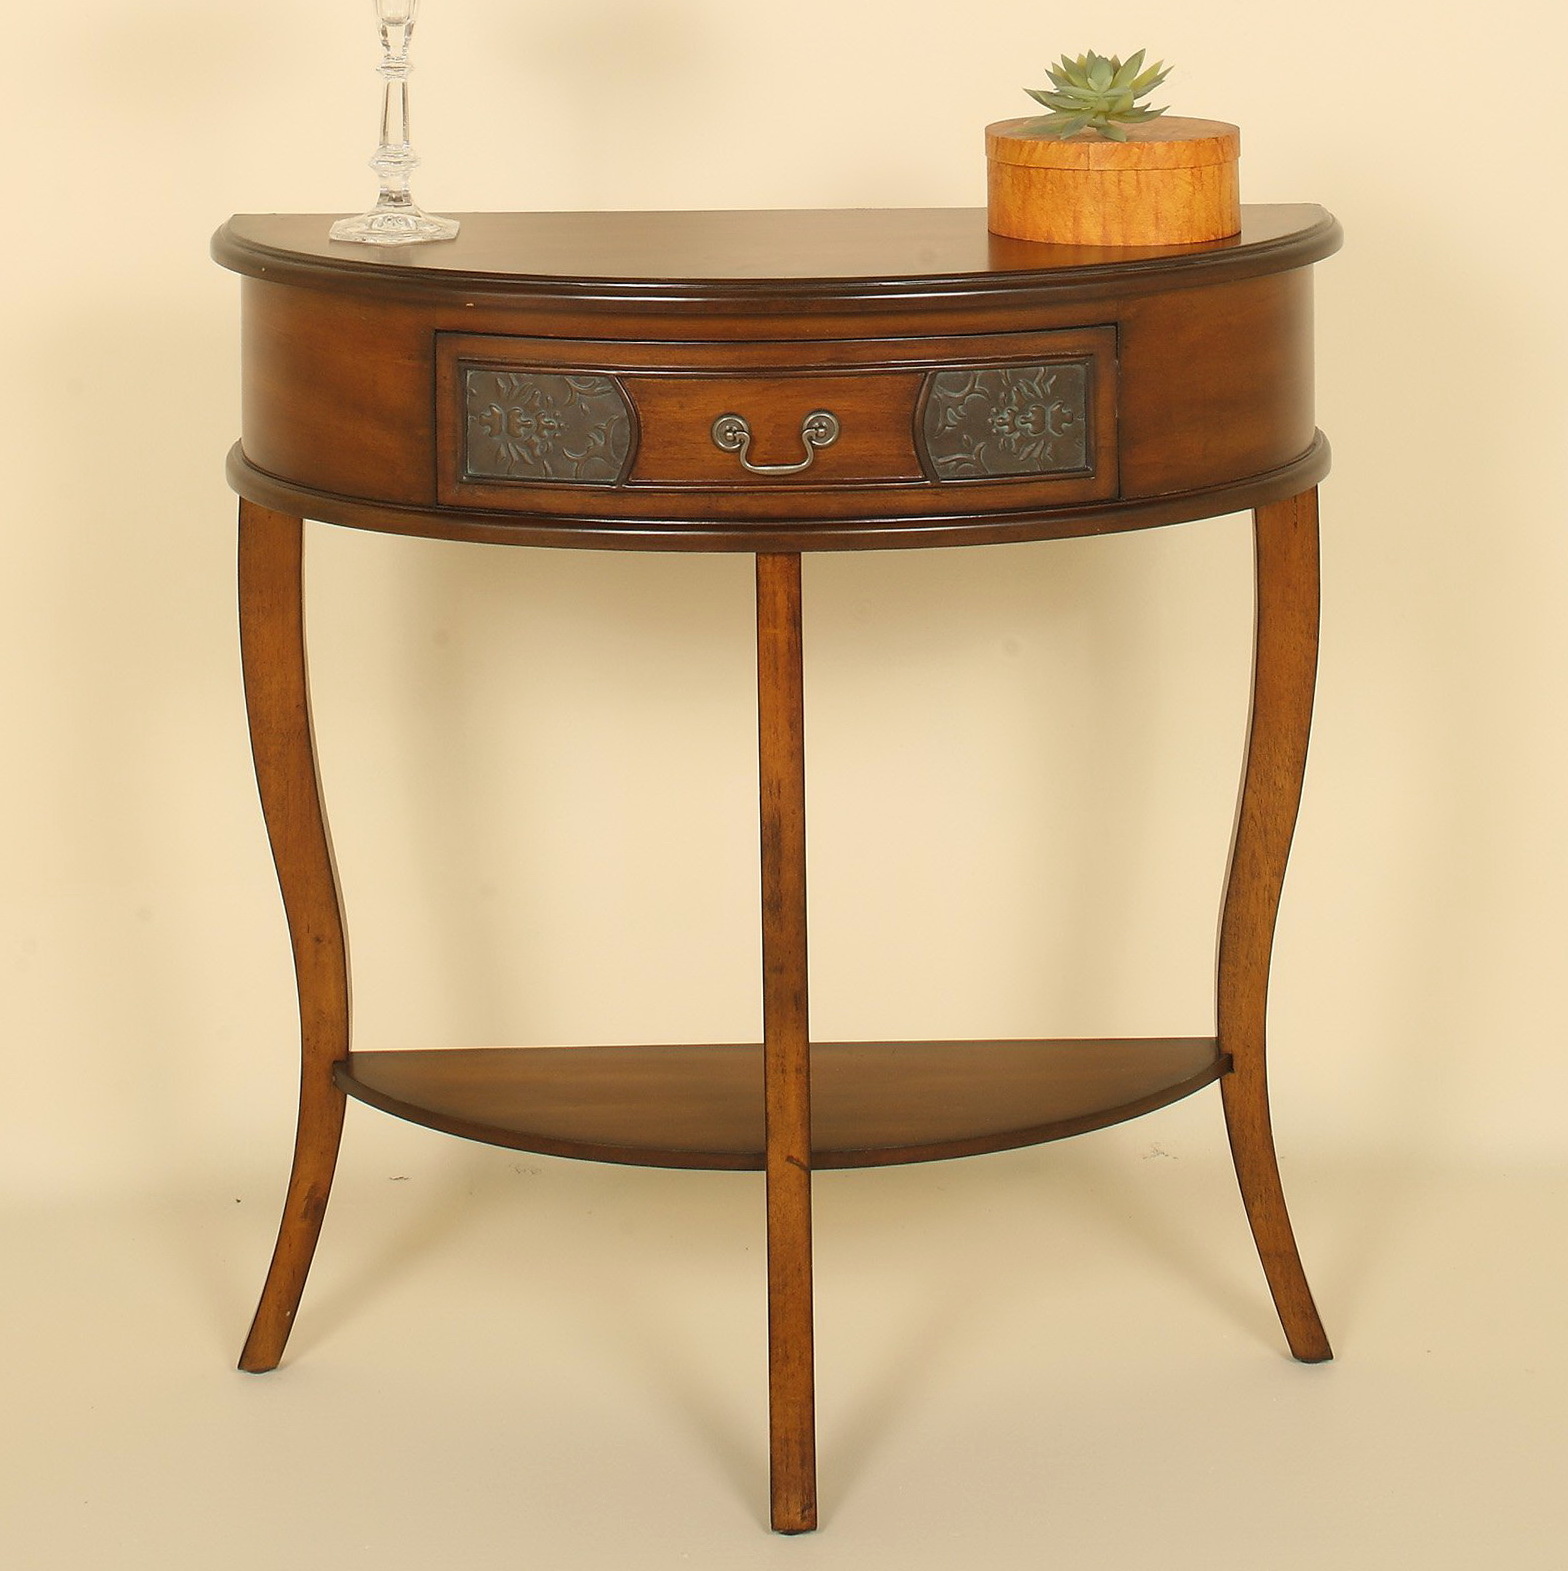 Half Round Console Table With Drawers